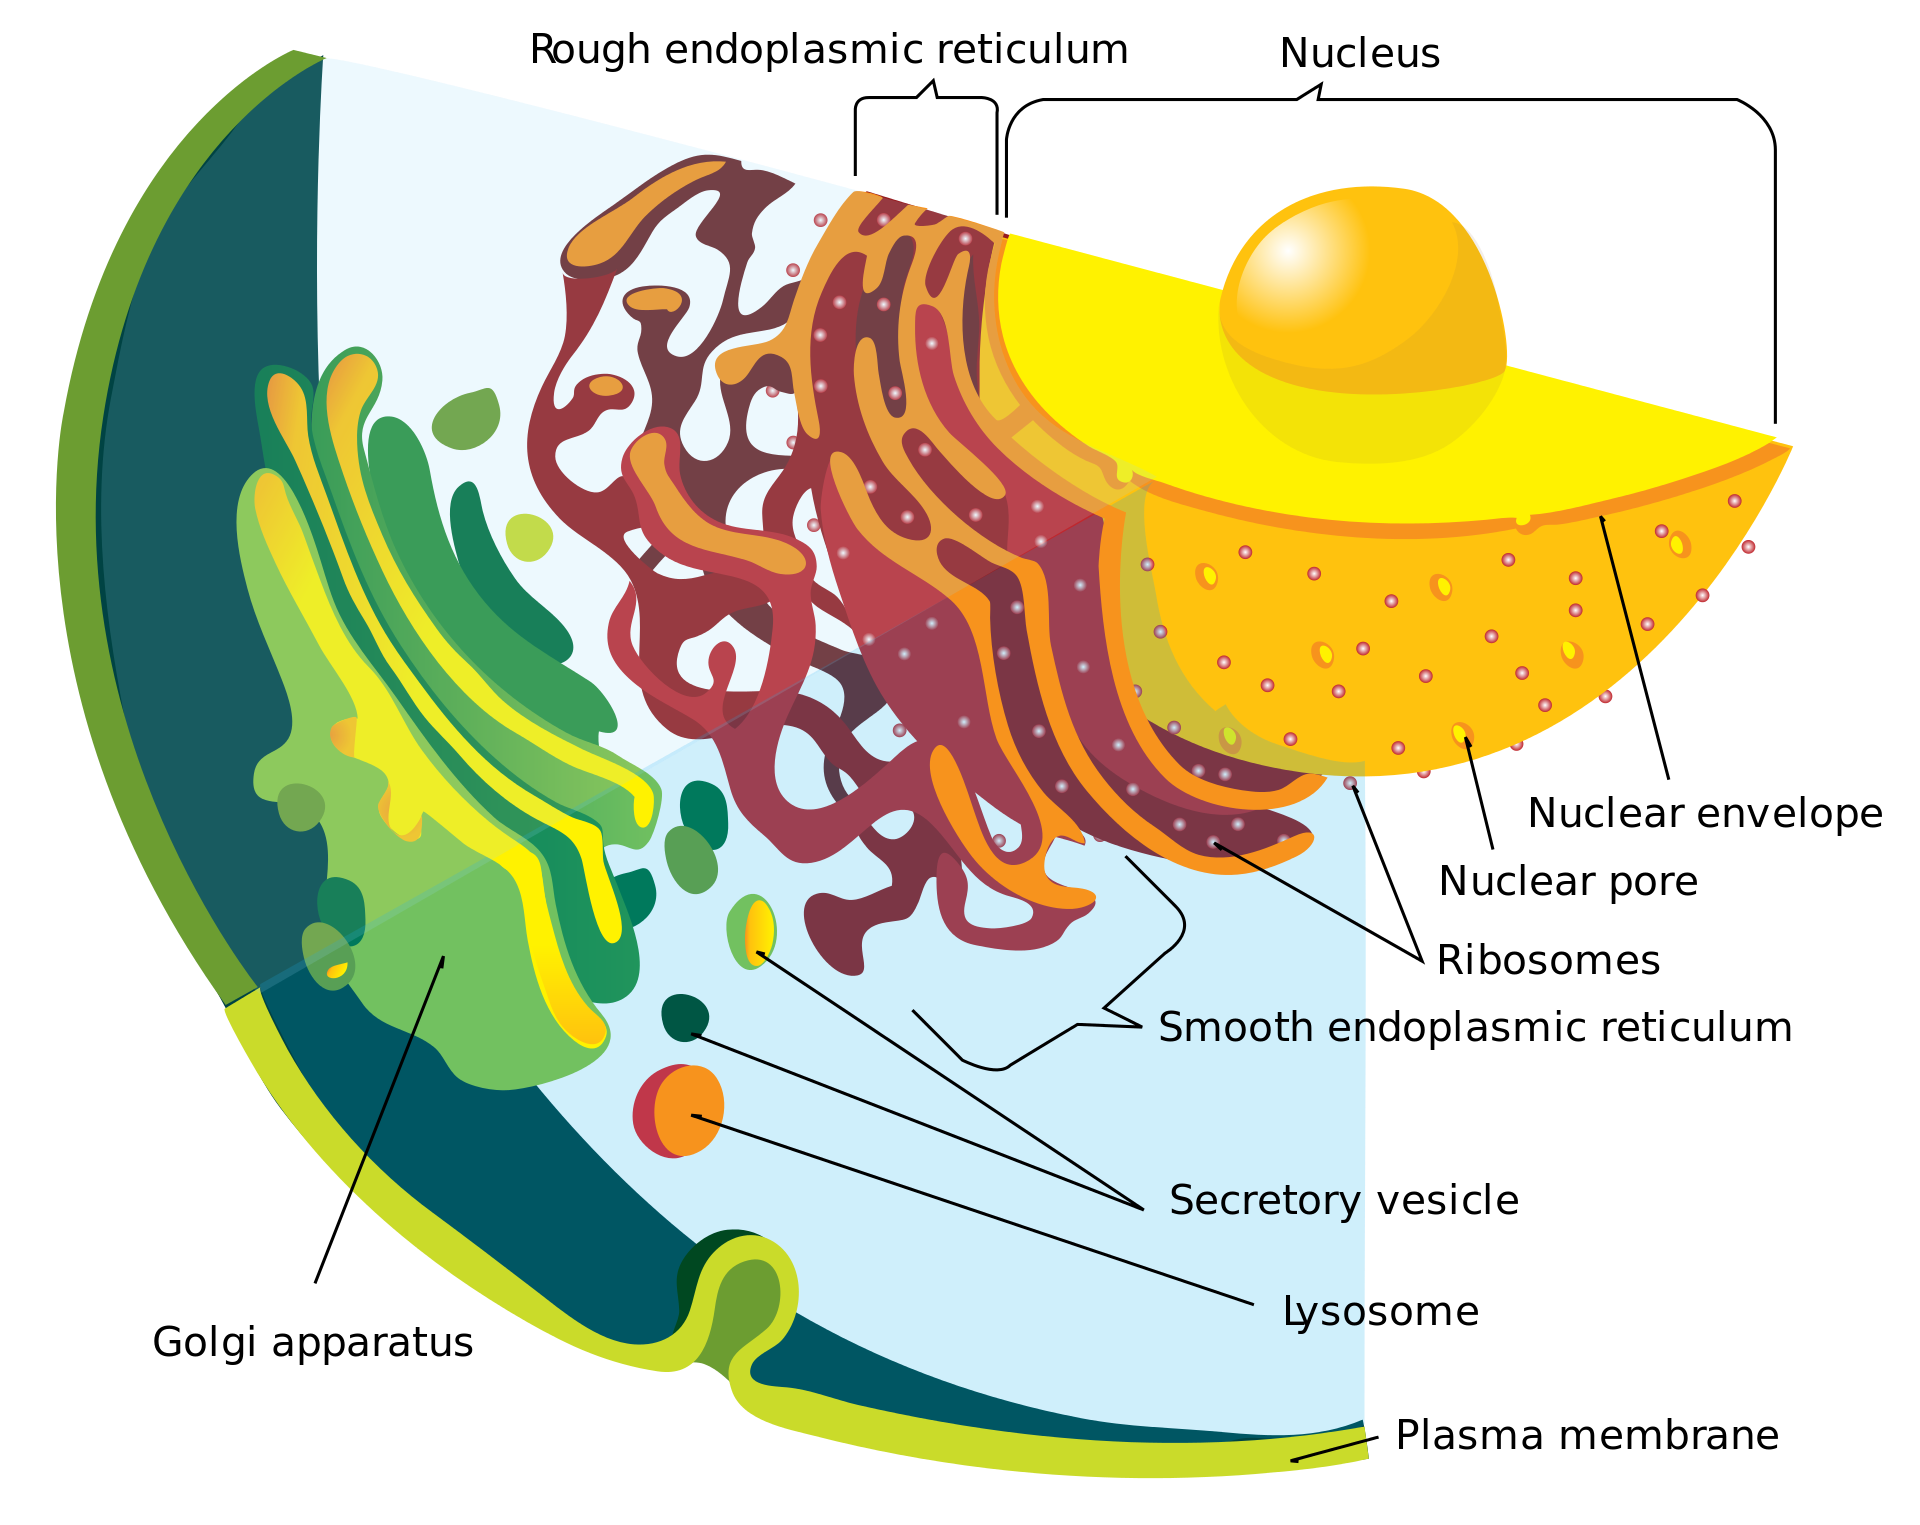 Cell Membrane Function In Eukaryotic Cells